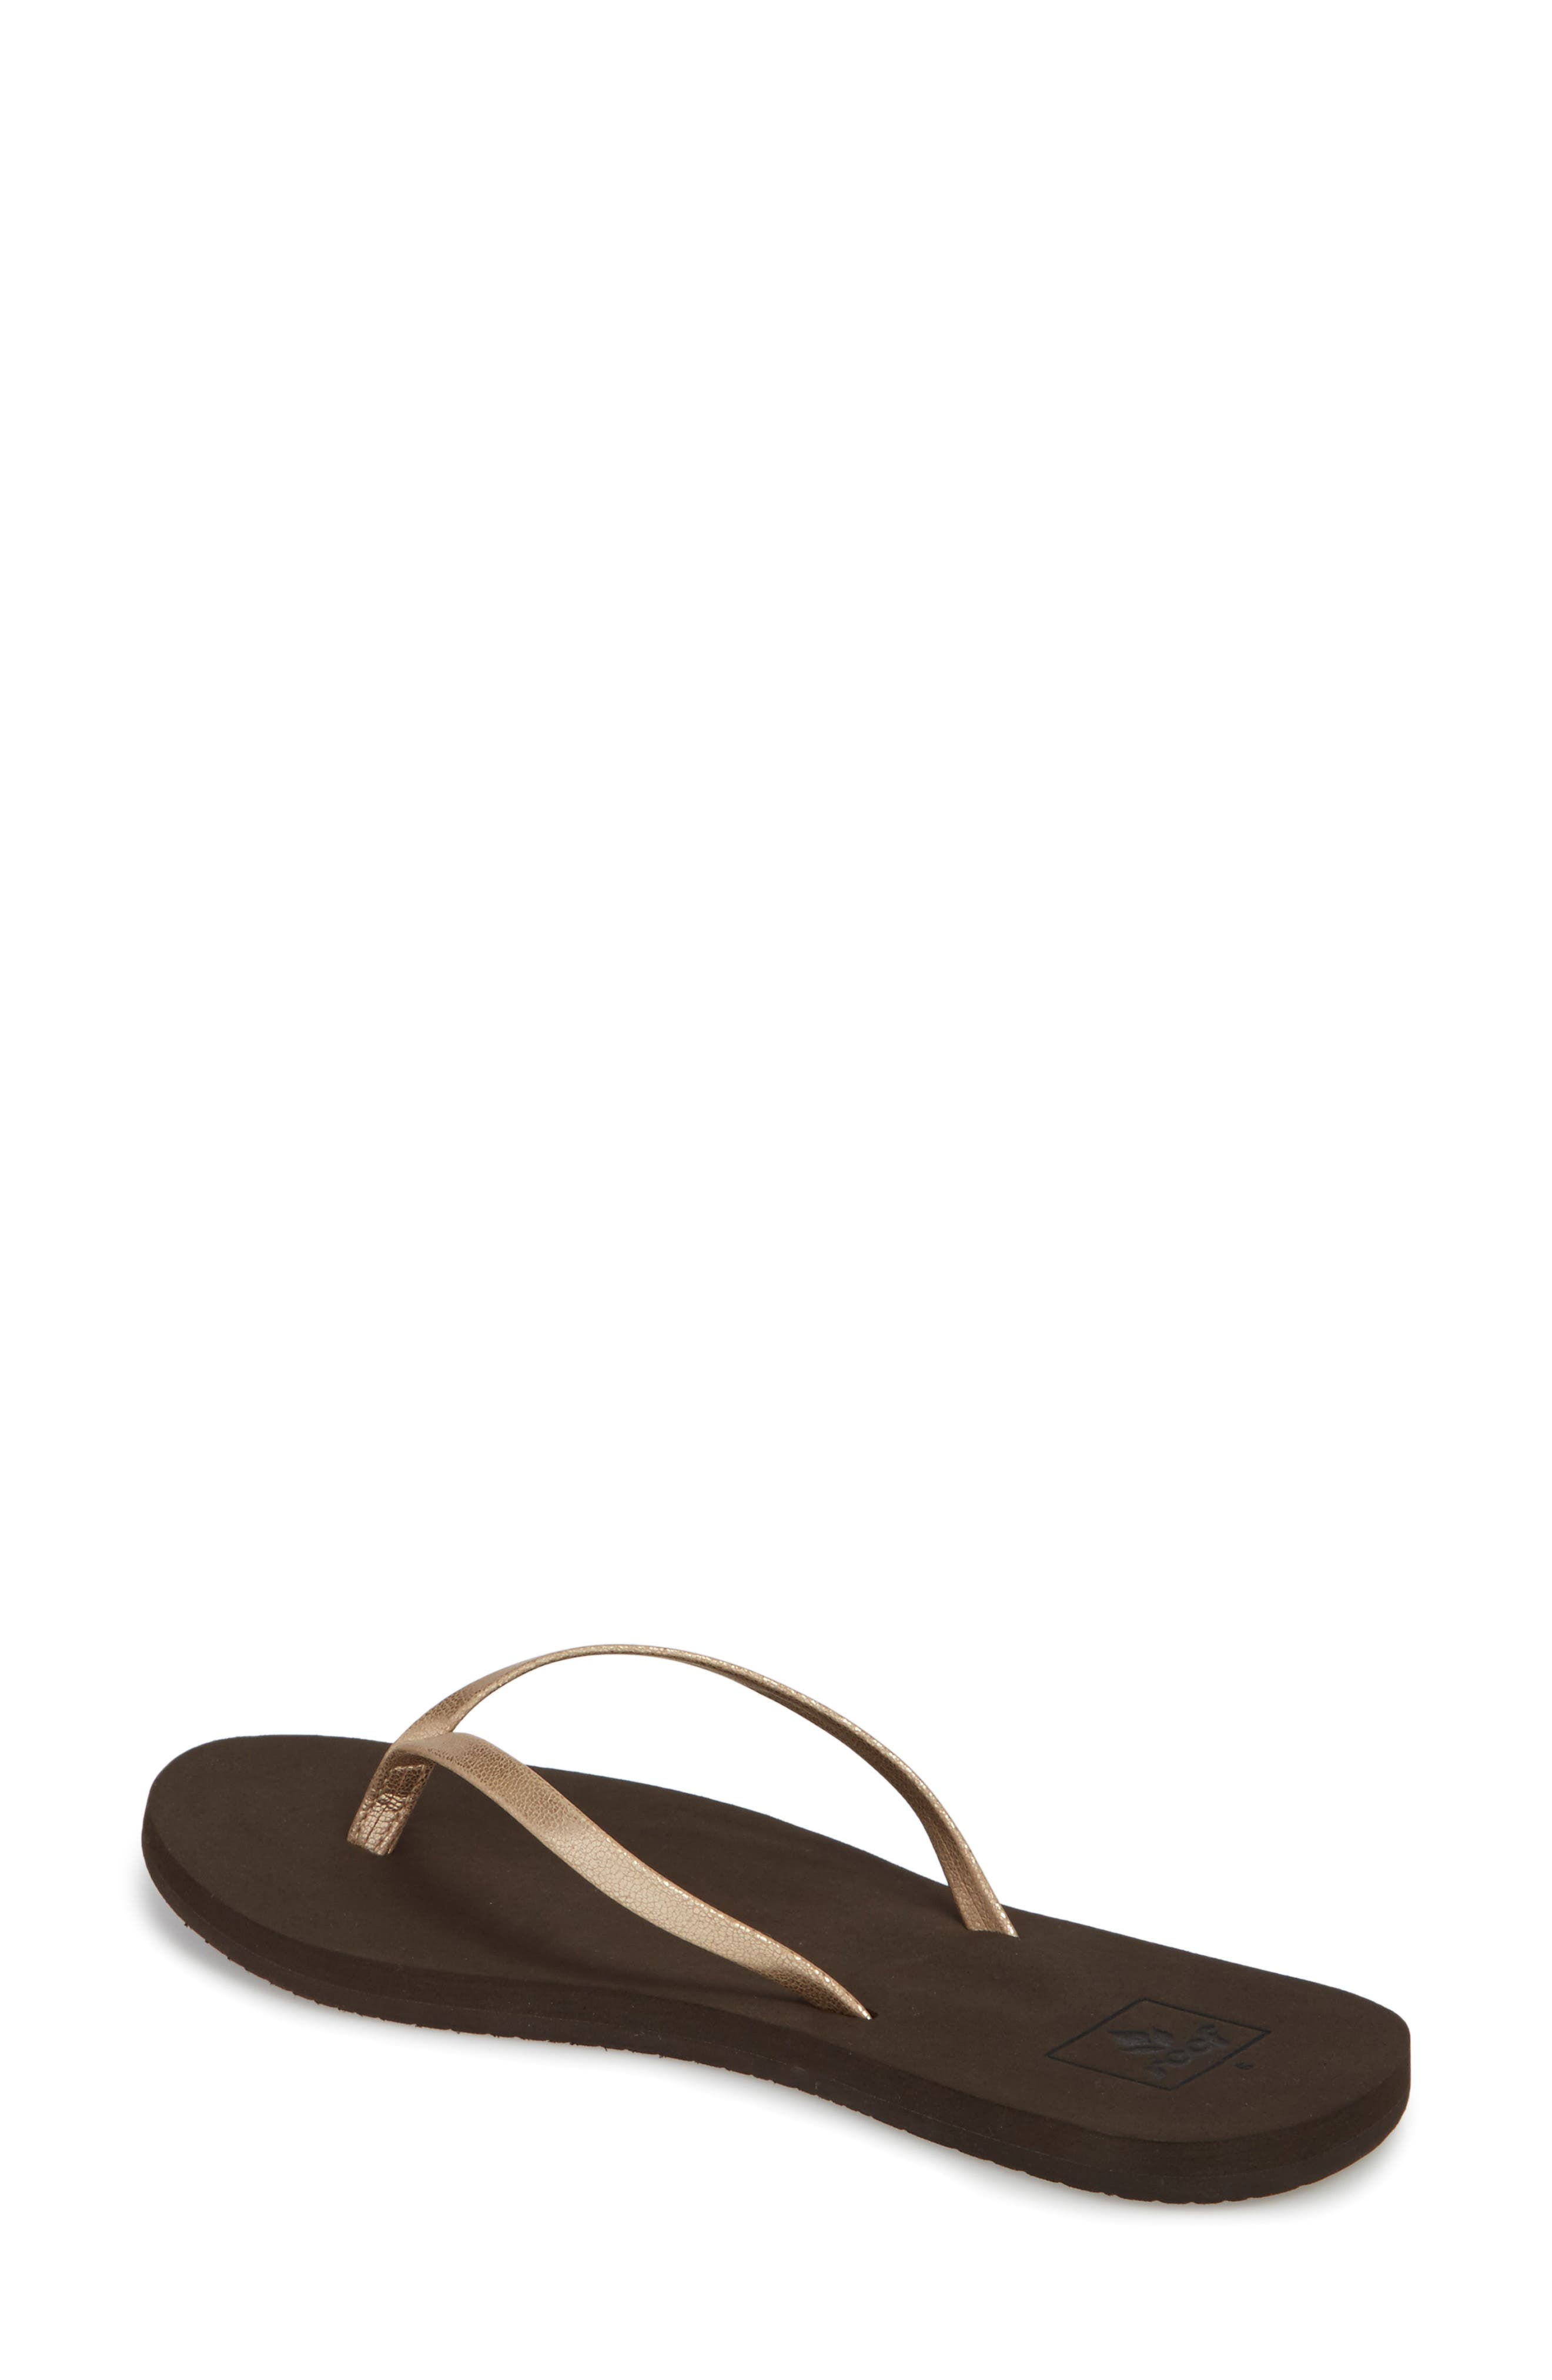 REEF, Bliss Nights Flip Flop, Alternate thumbnail 2, color, ROSE GOLD